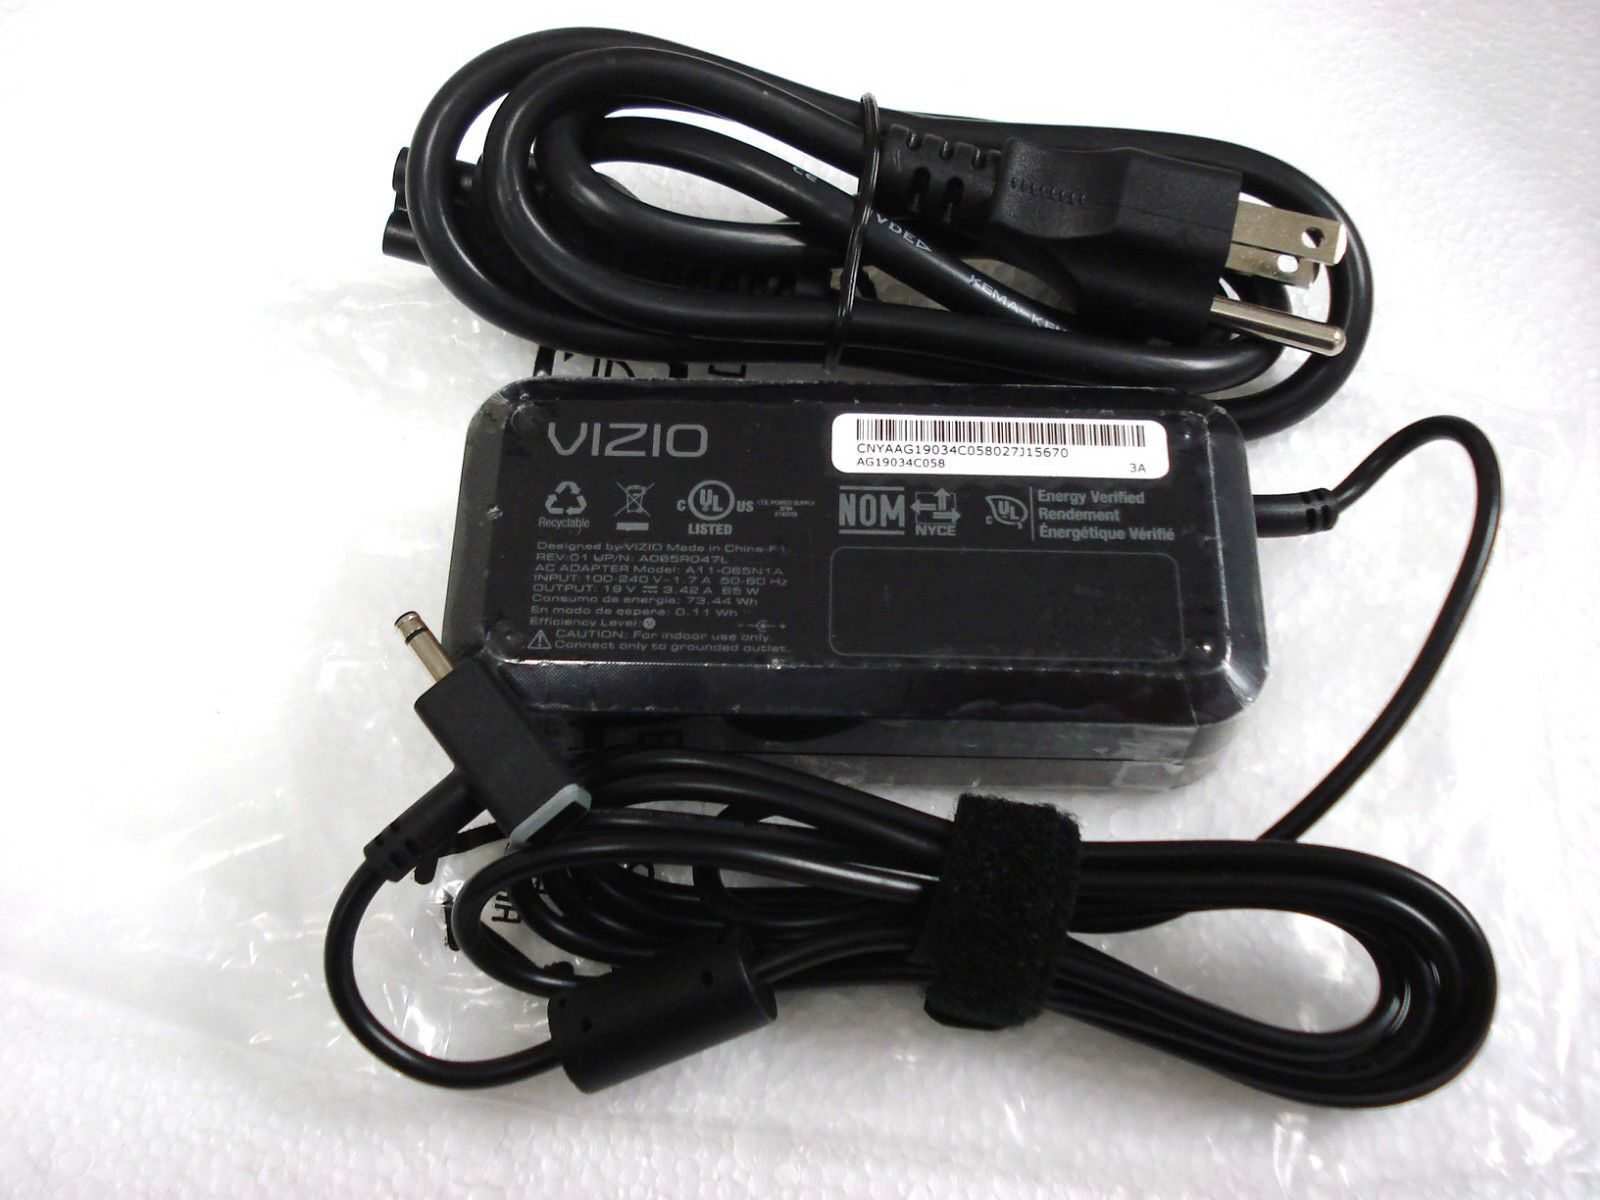 Vizio 65W CT14-A1 CN15-A2 Ultrabook AC Adapter Charger